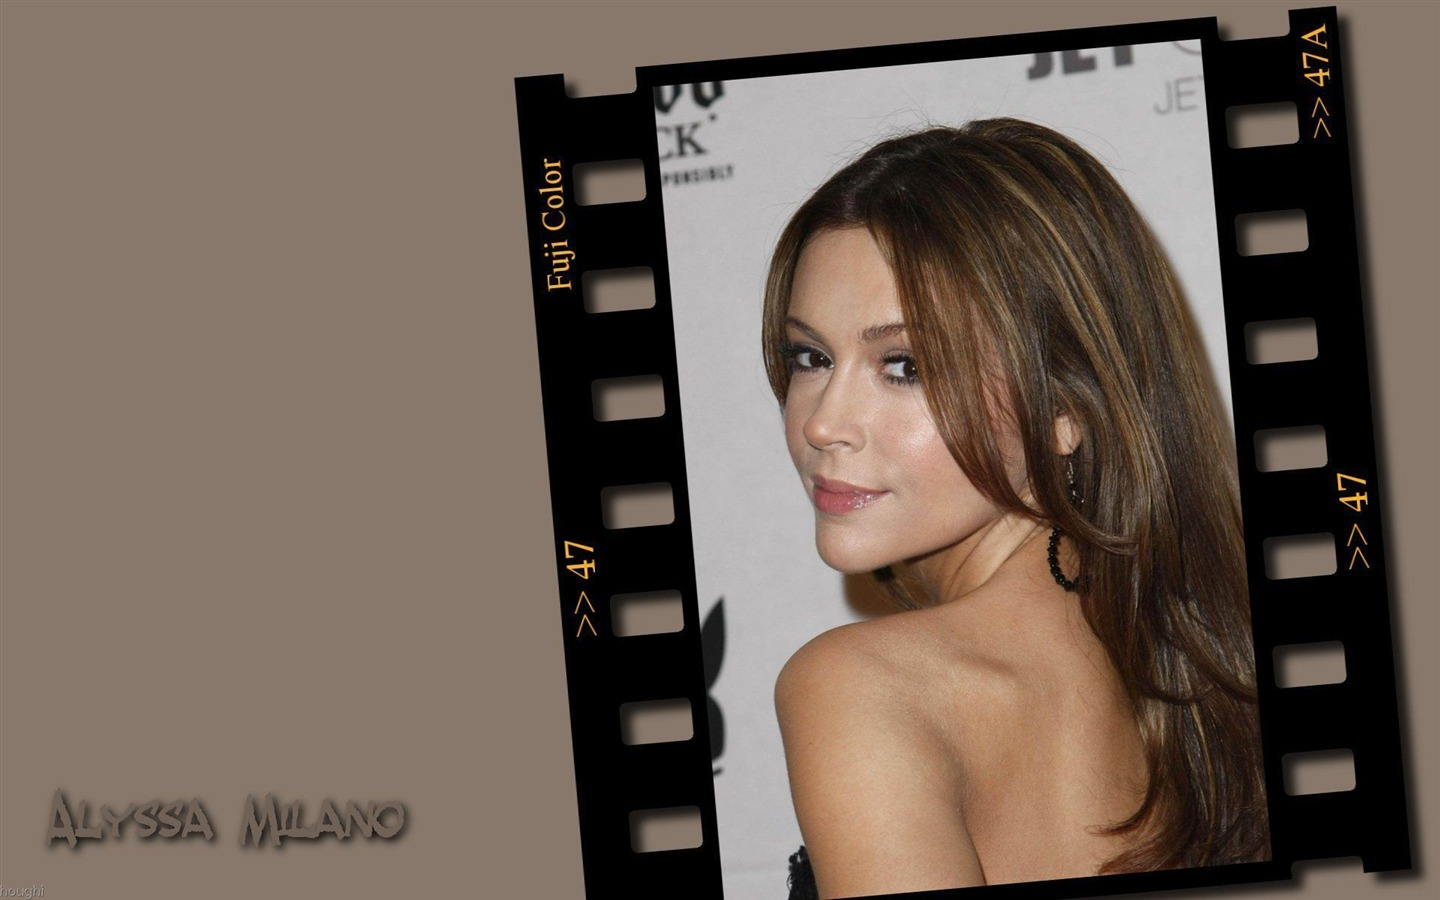 Alyssa Milano #043 - 1440x900 Wallpapers Pictures Photos Images